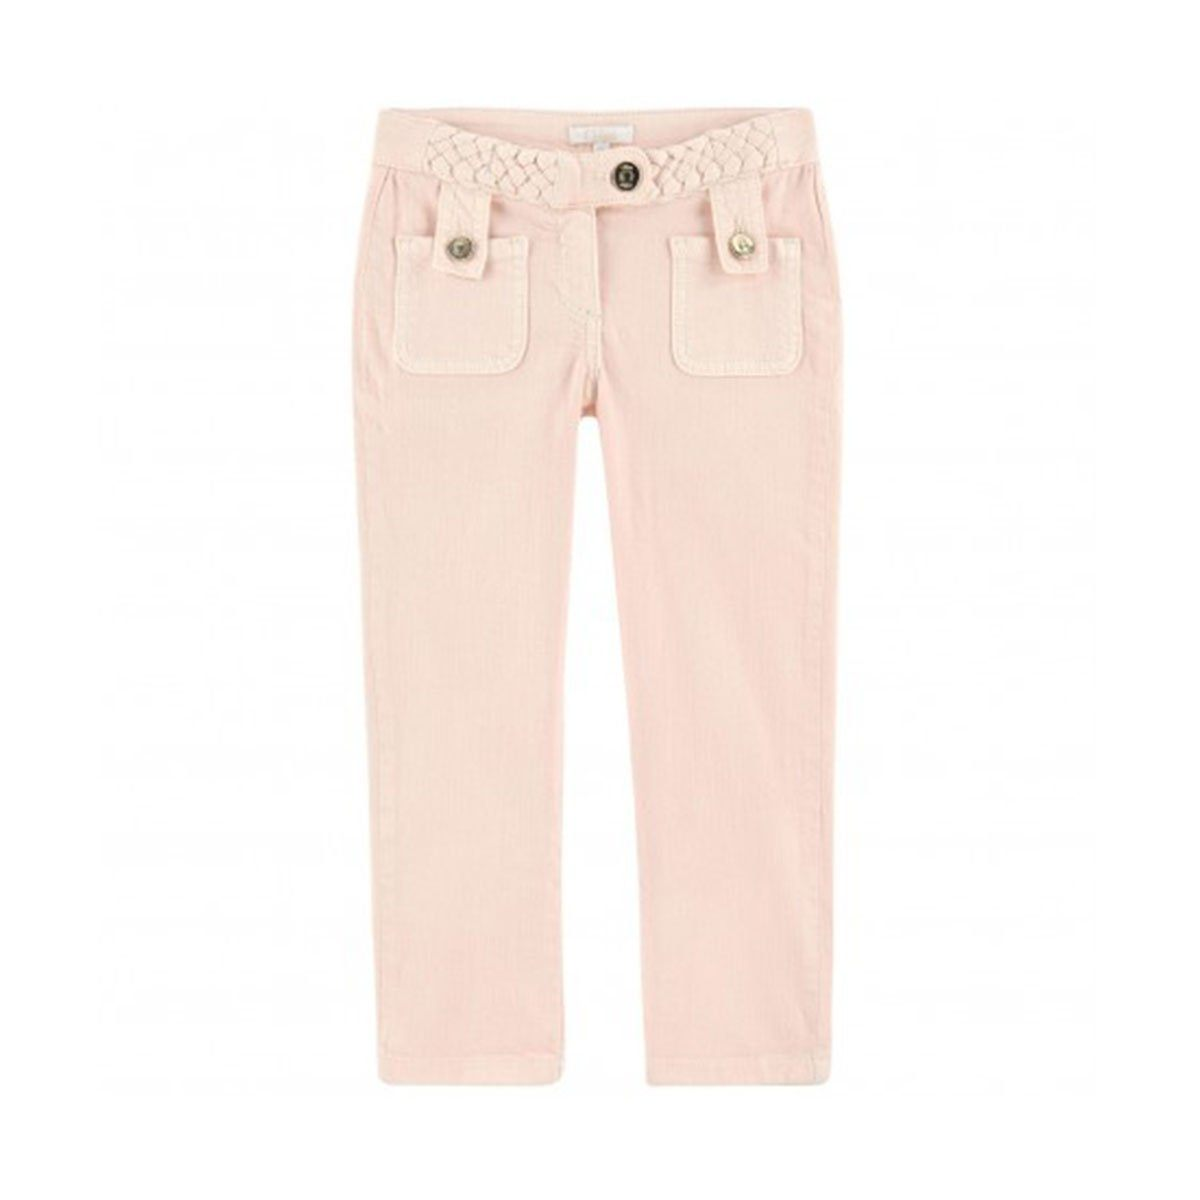 Chloe - Pants For Girls, Pink